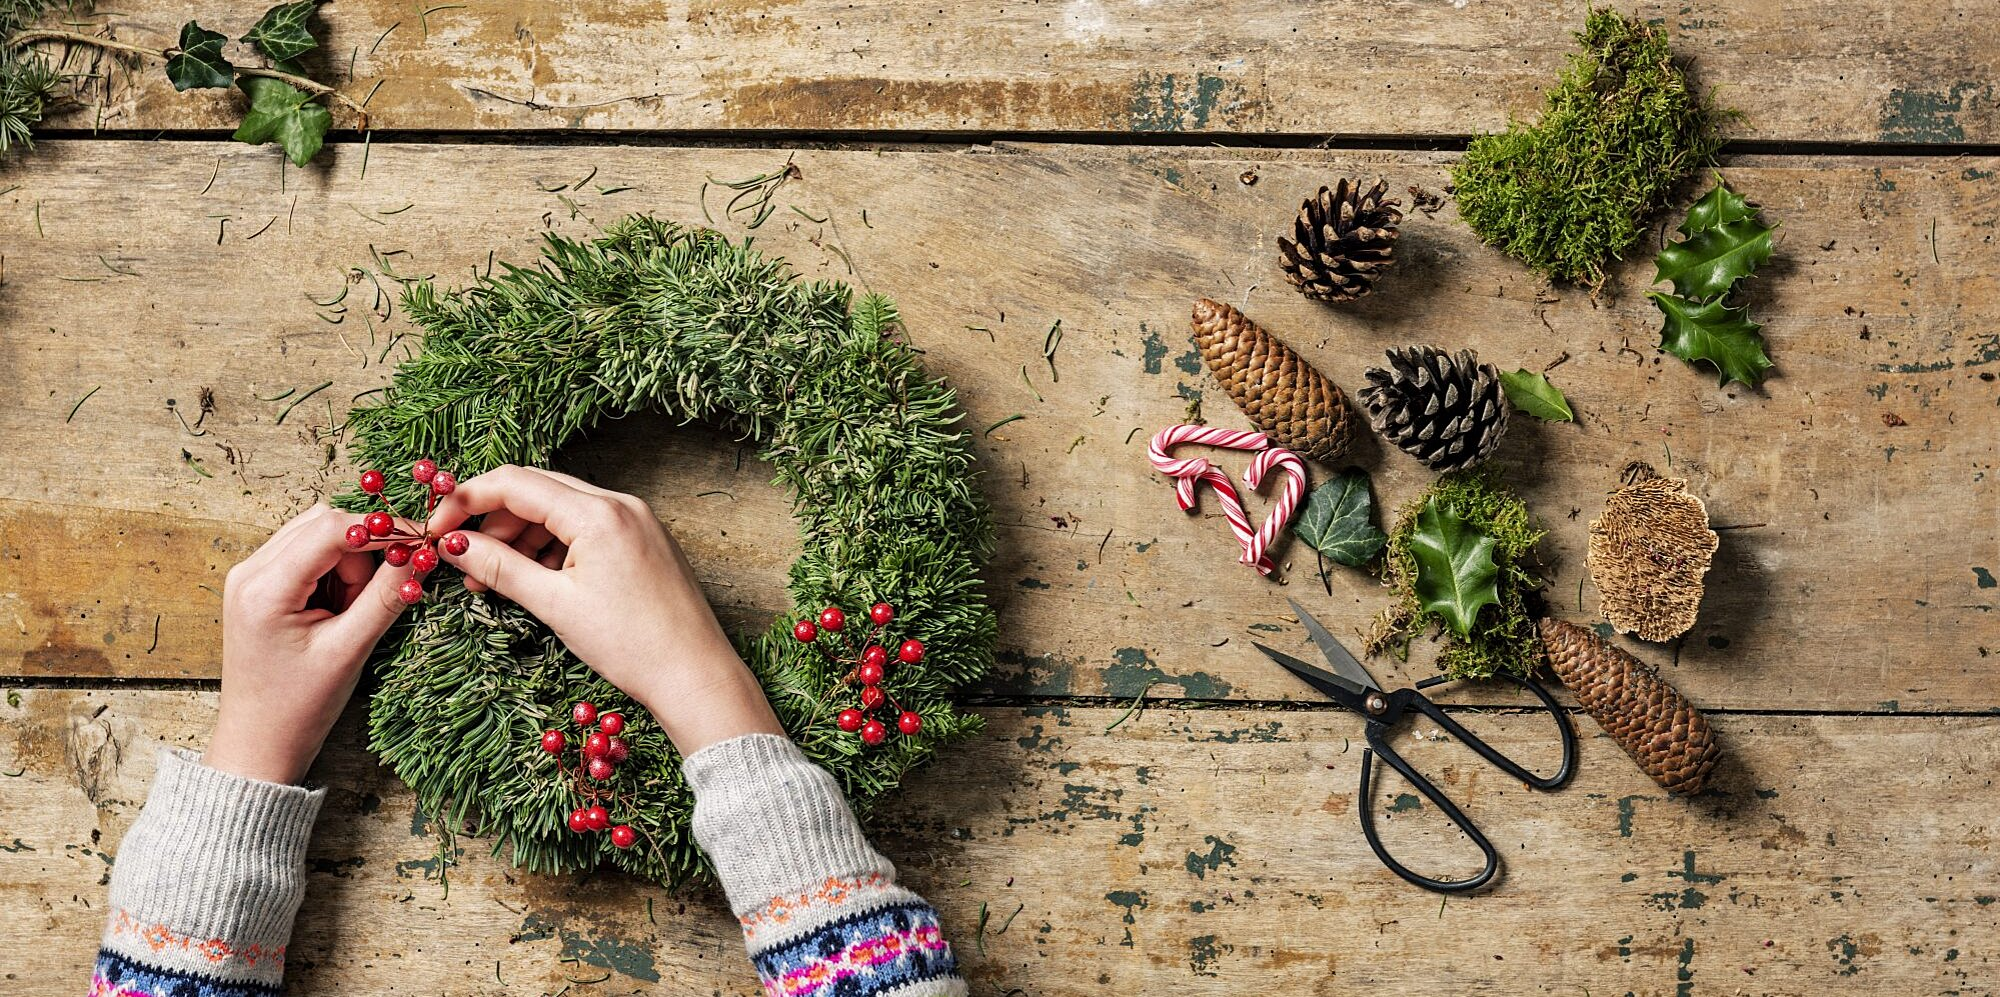 51 Christmas Crafts to Brighten Up Your Holiday Decor (and Fill Your Winter Hours)